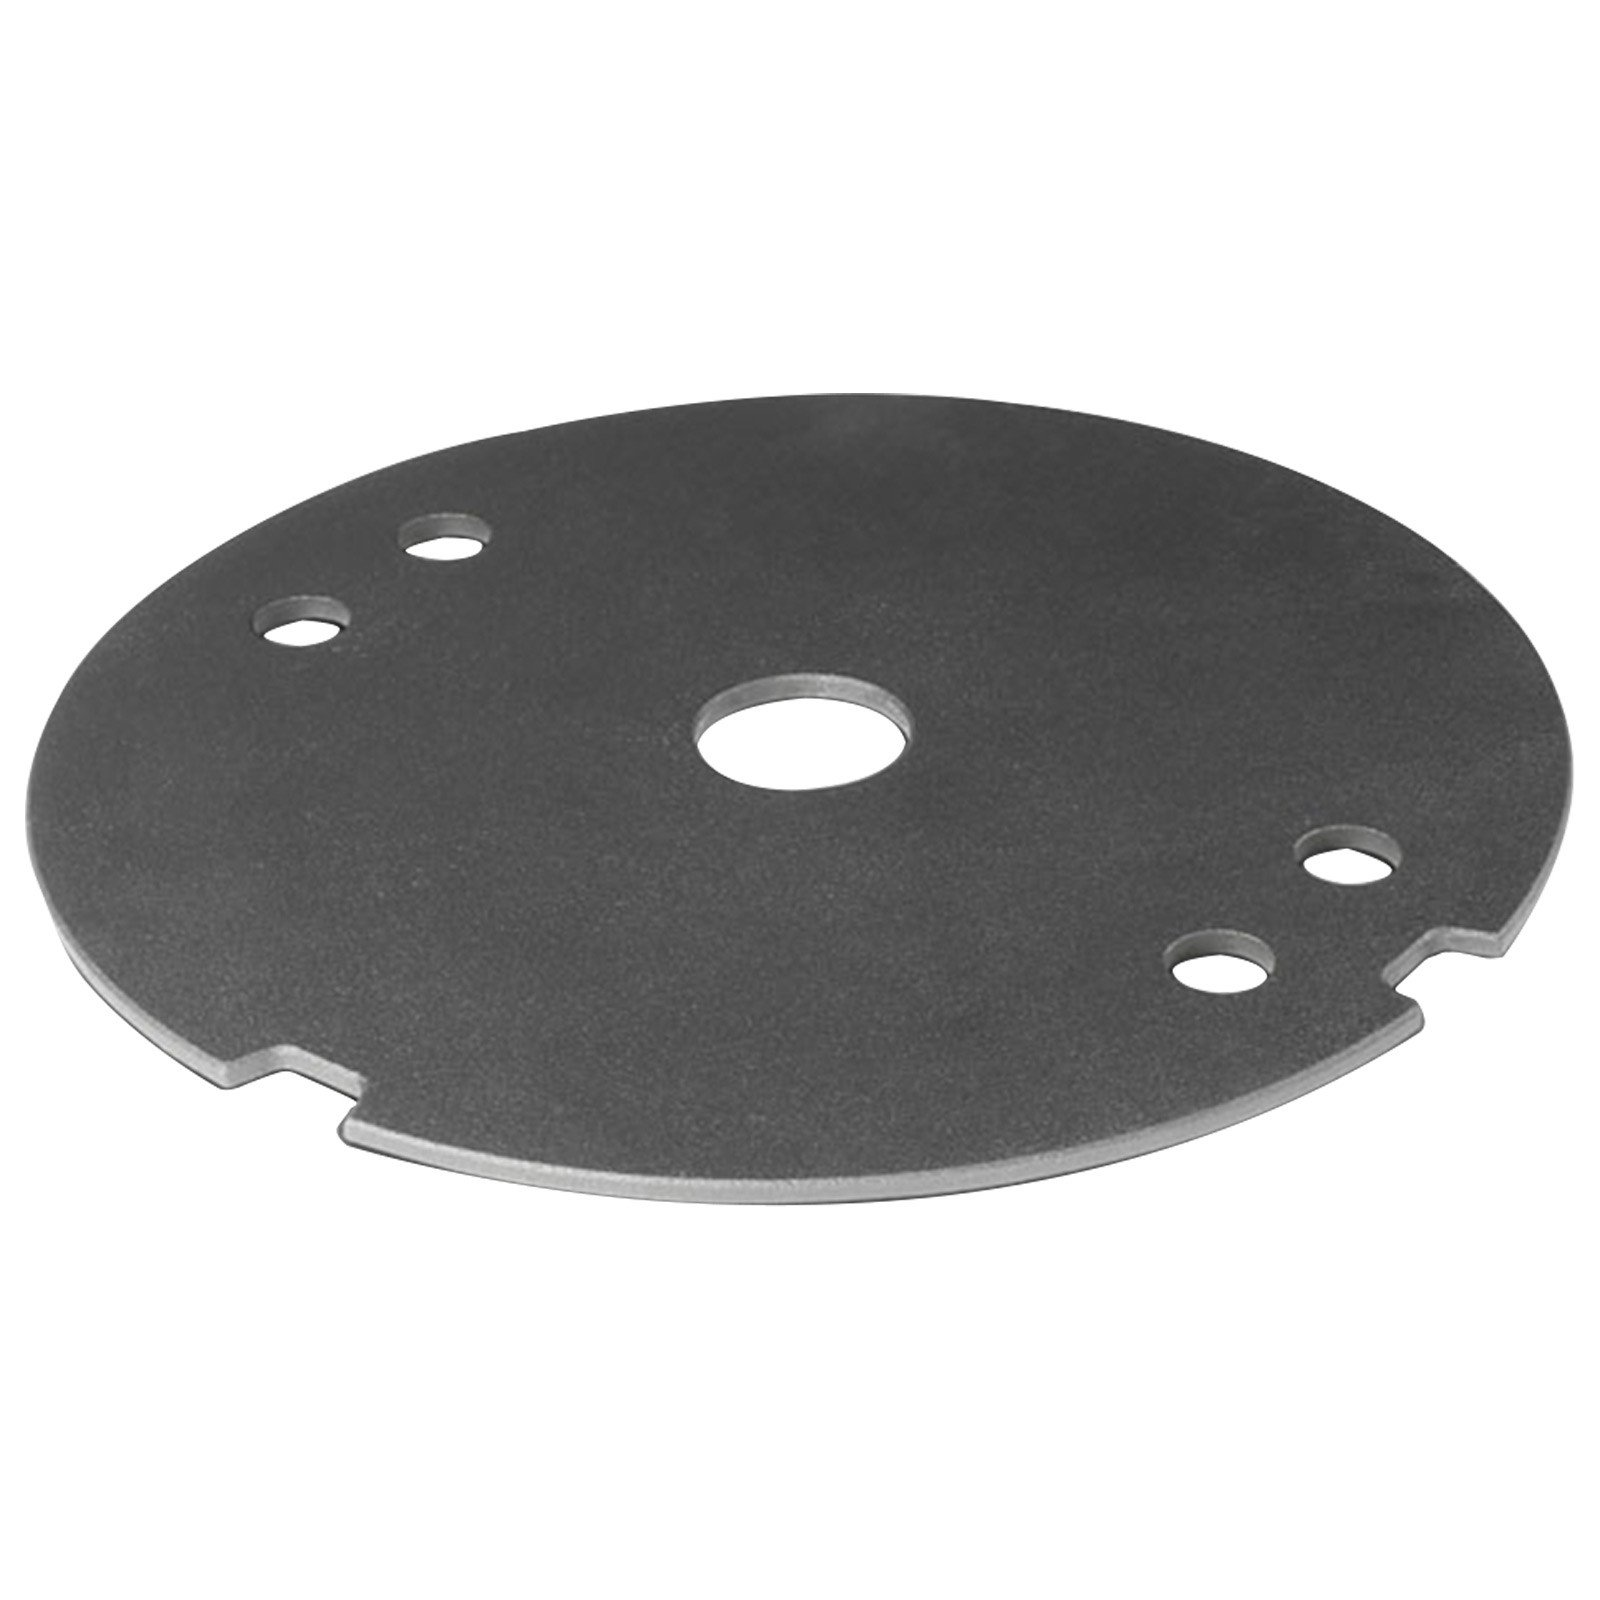 gravity-stands-gwb123wpb---weight-plate-for-gwb123b-round-speaker-pole-base.jpeg